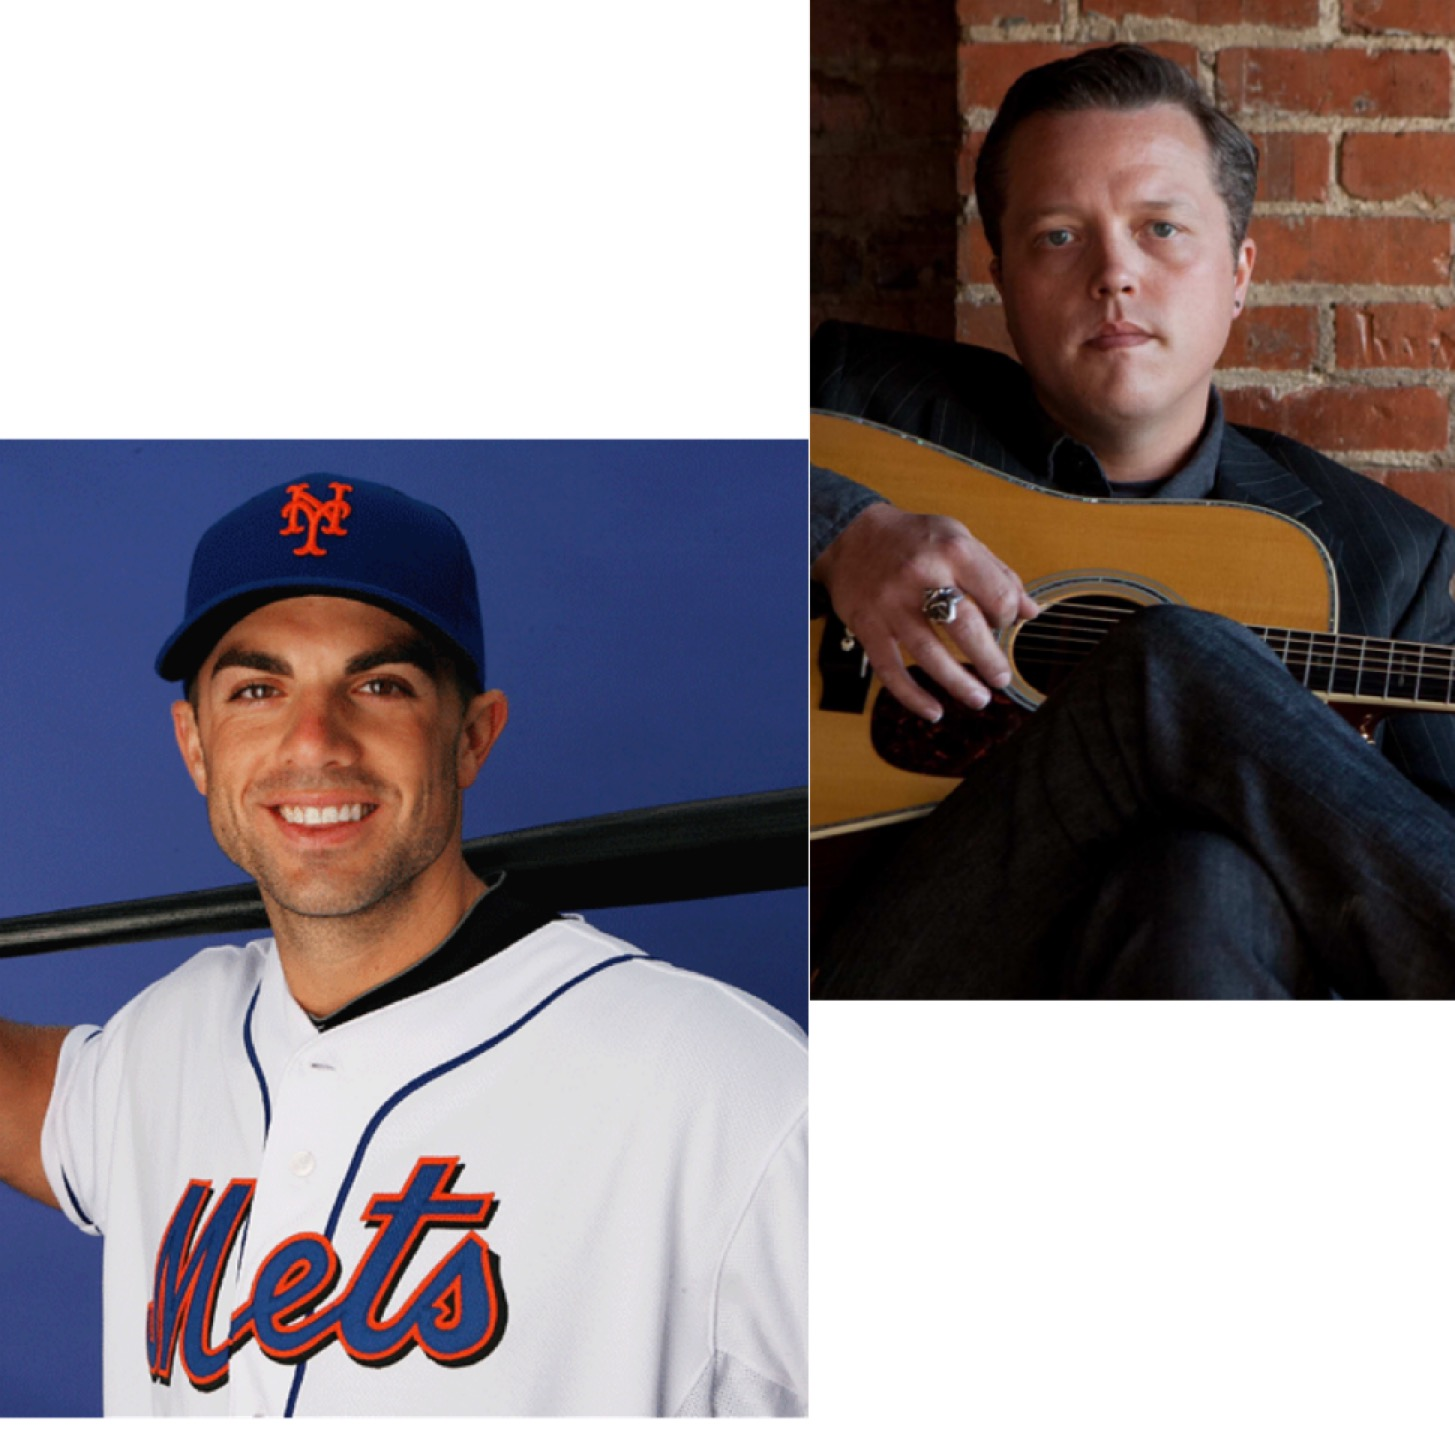 Jason Isbell and David Wright